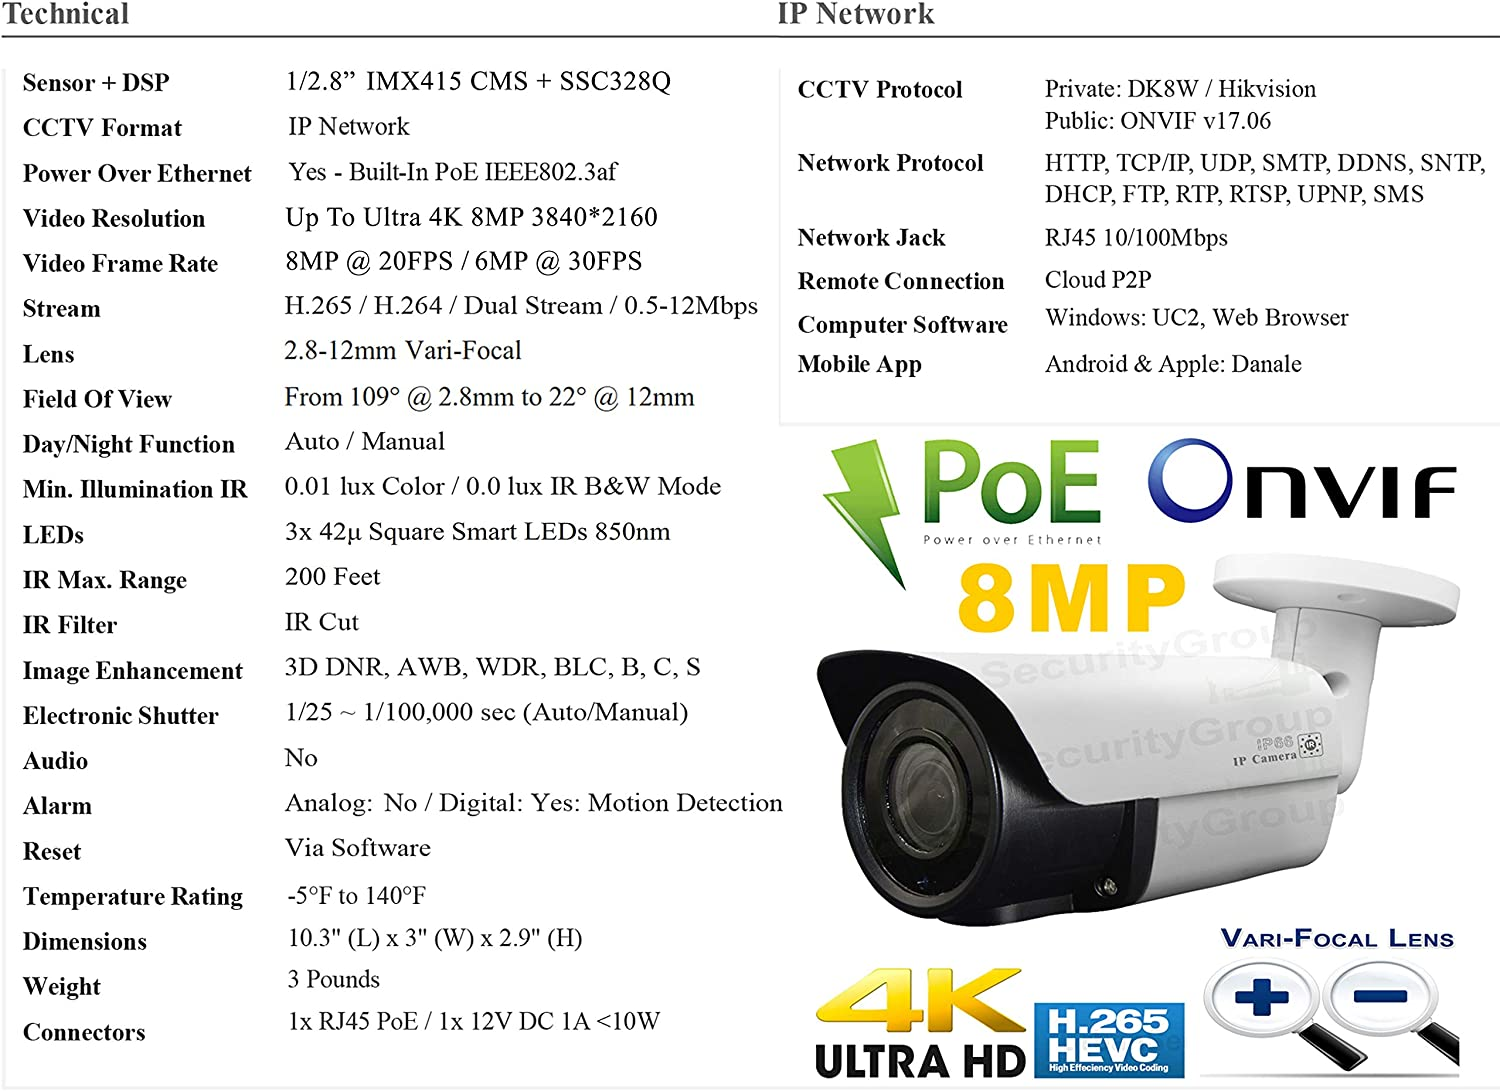 8 16 Channel Ultra 4K PoE NVR + Urban Security Group 8MP 8 Camera PoE System : 6TB HDD : Indoor Outdoor : Plug Play 8MP Bullet 2.8-12mm 200ft IR Range Cameras + 1 1